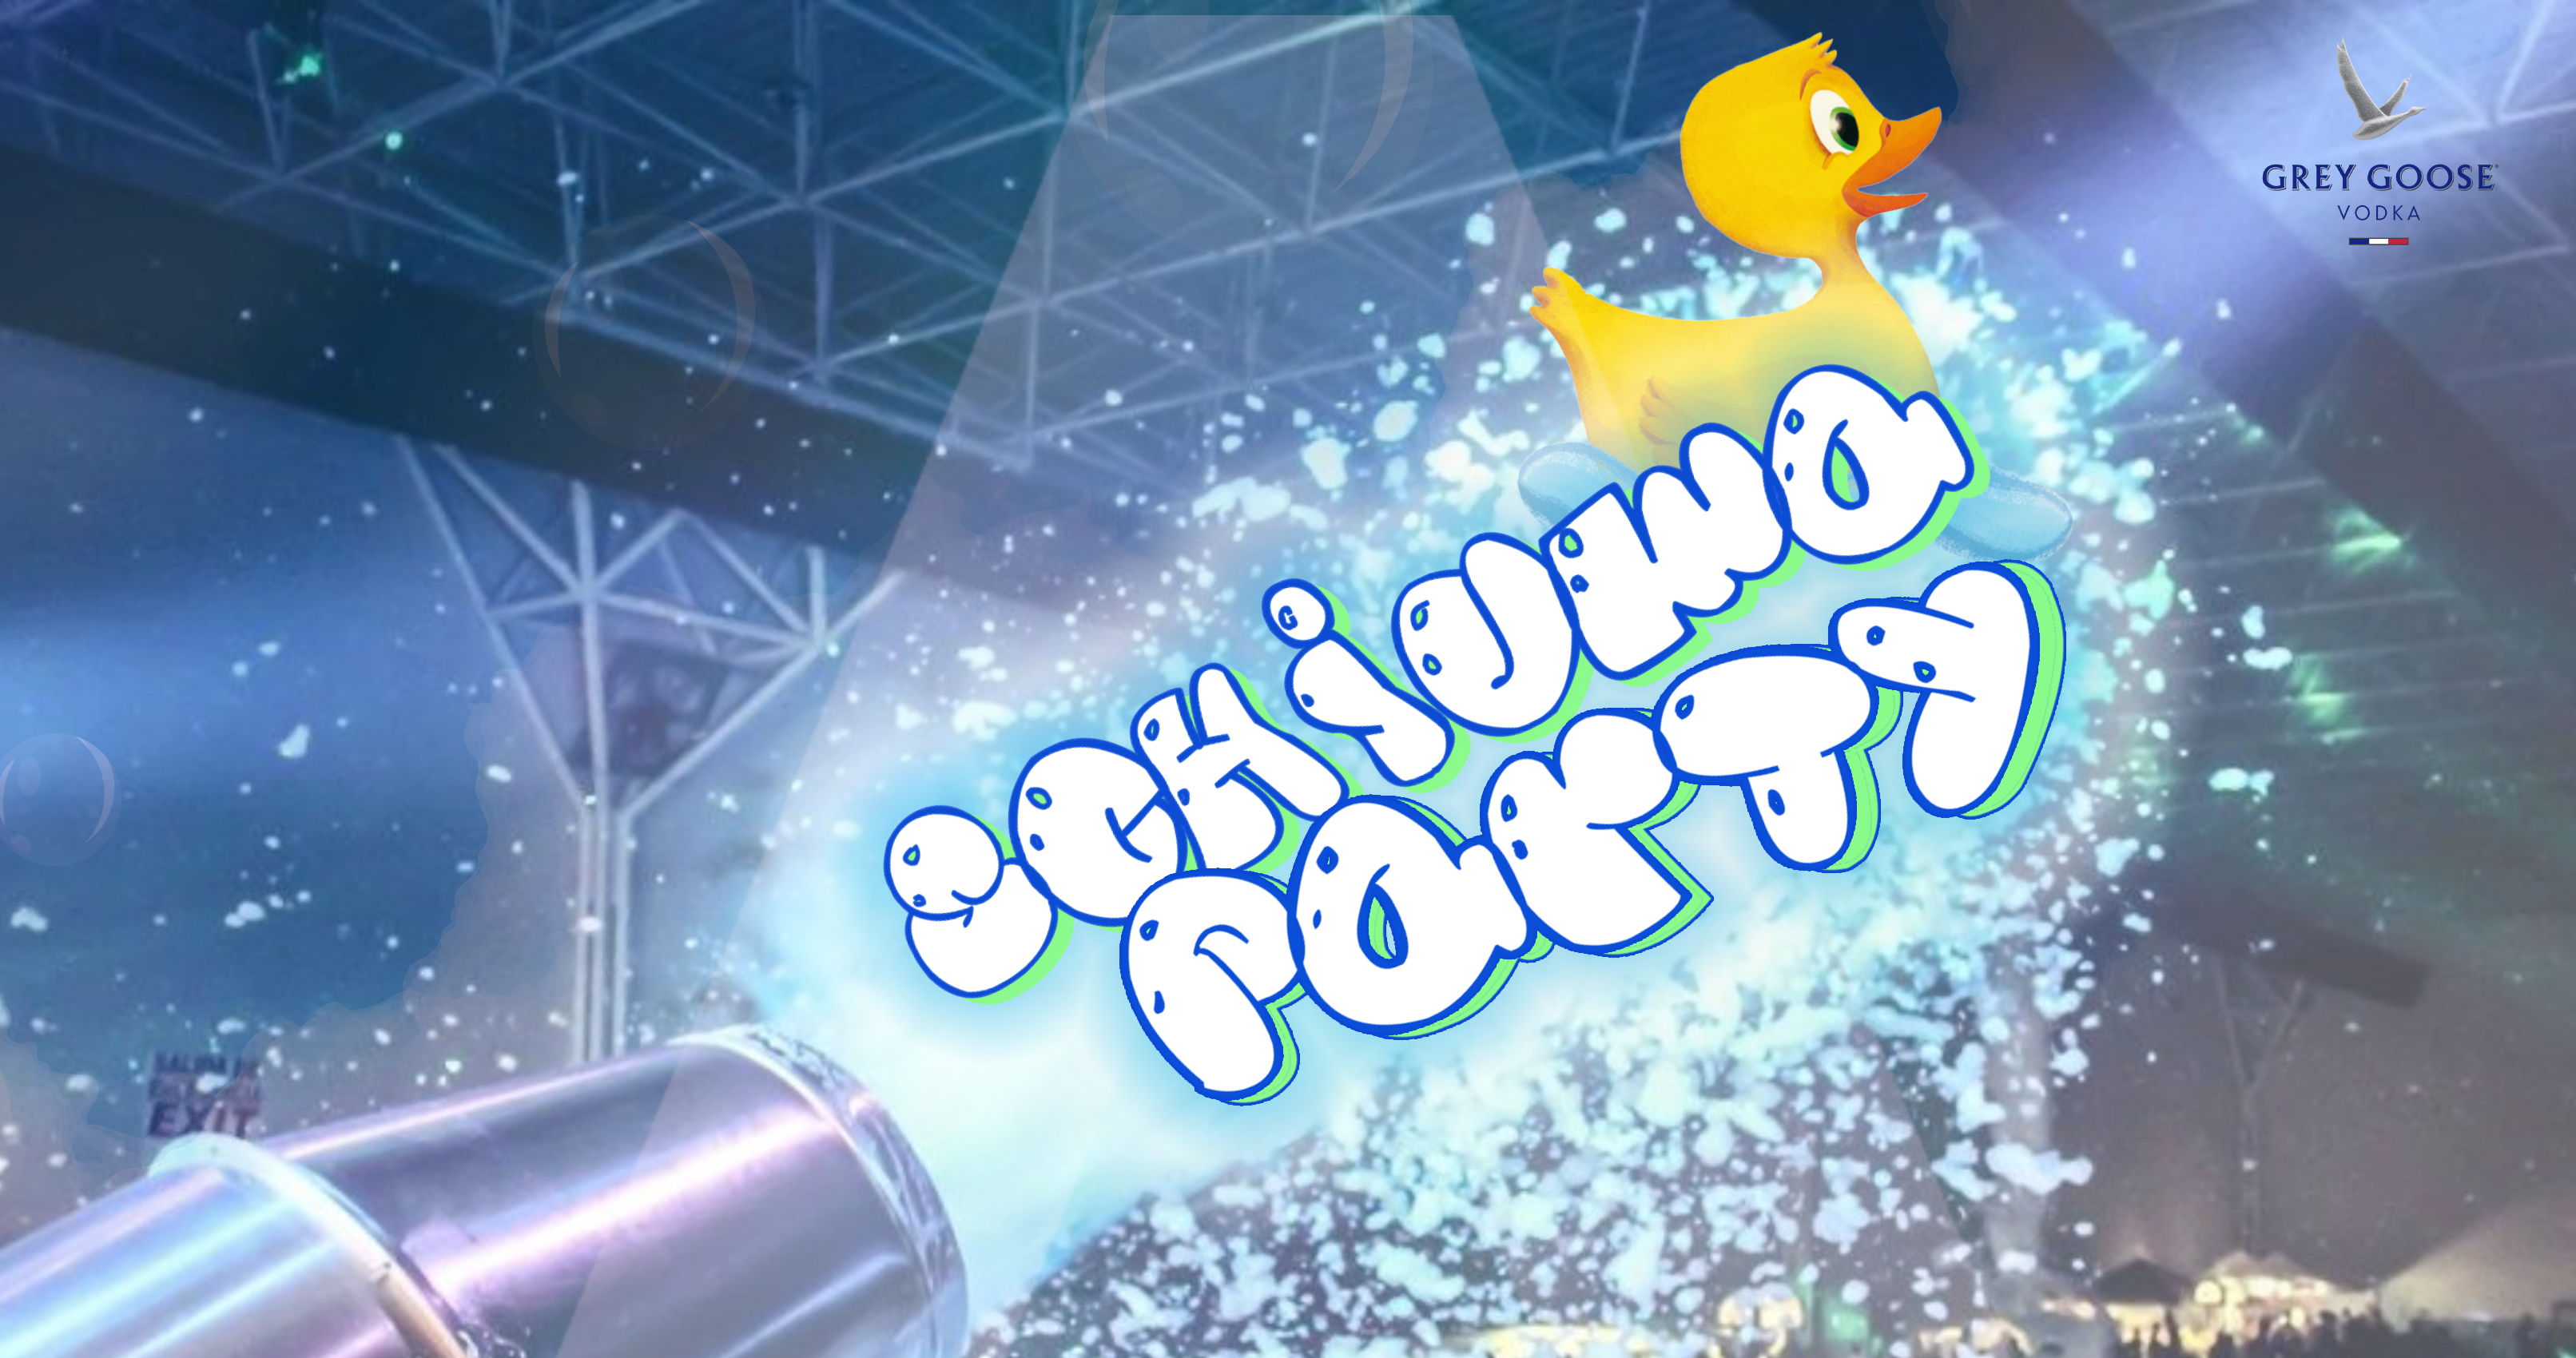 schiuma_party_website